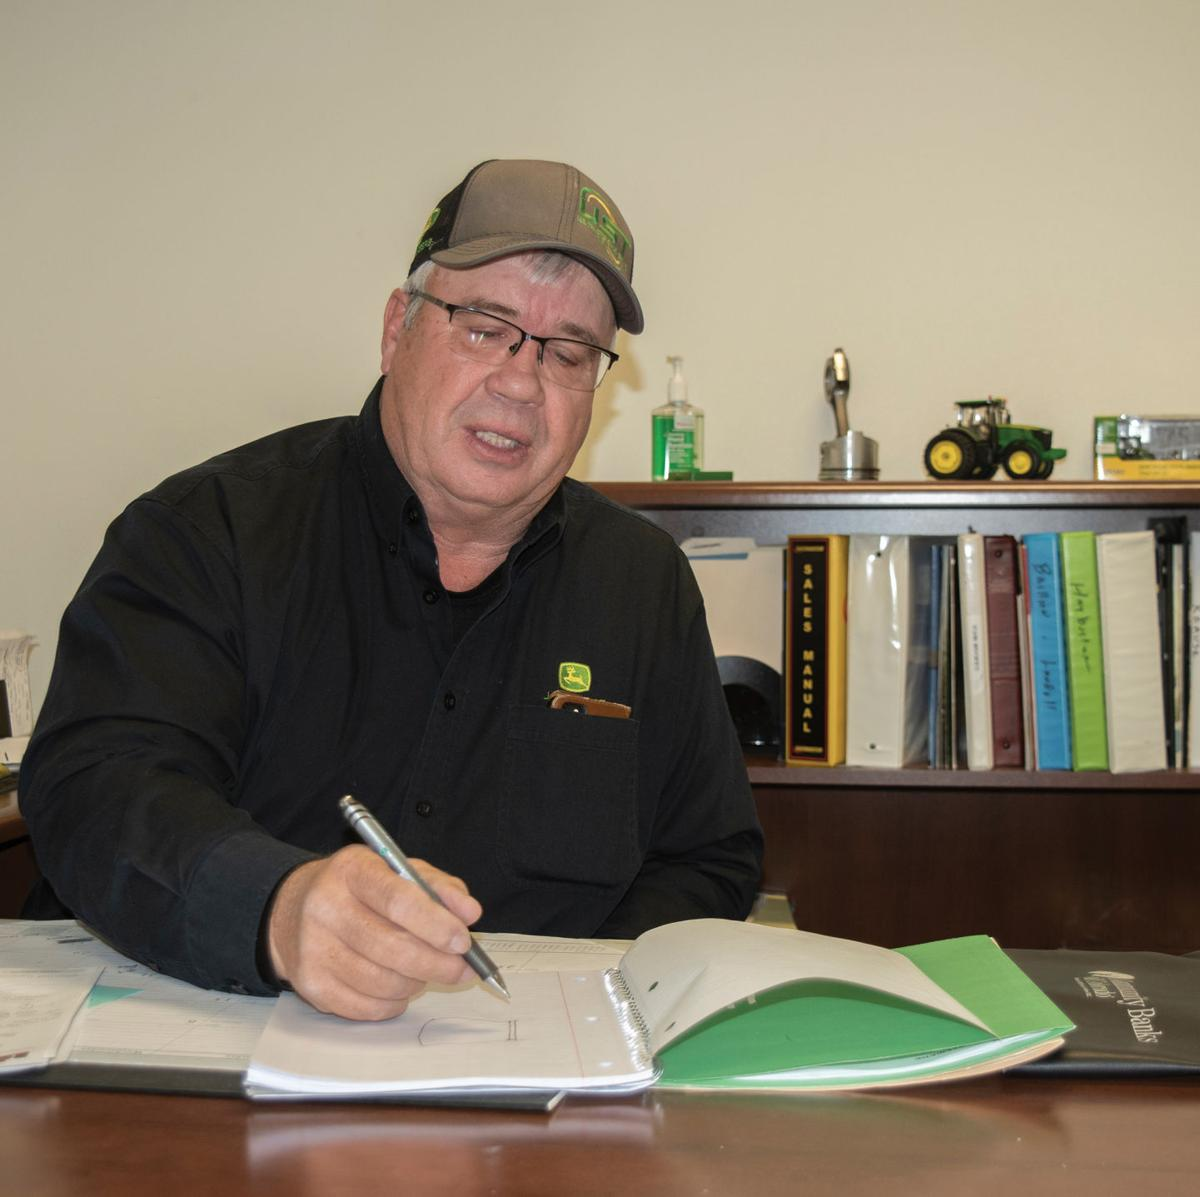 Montrose US Tractor and Harvest Manager Kirk Smith